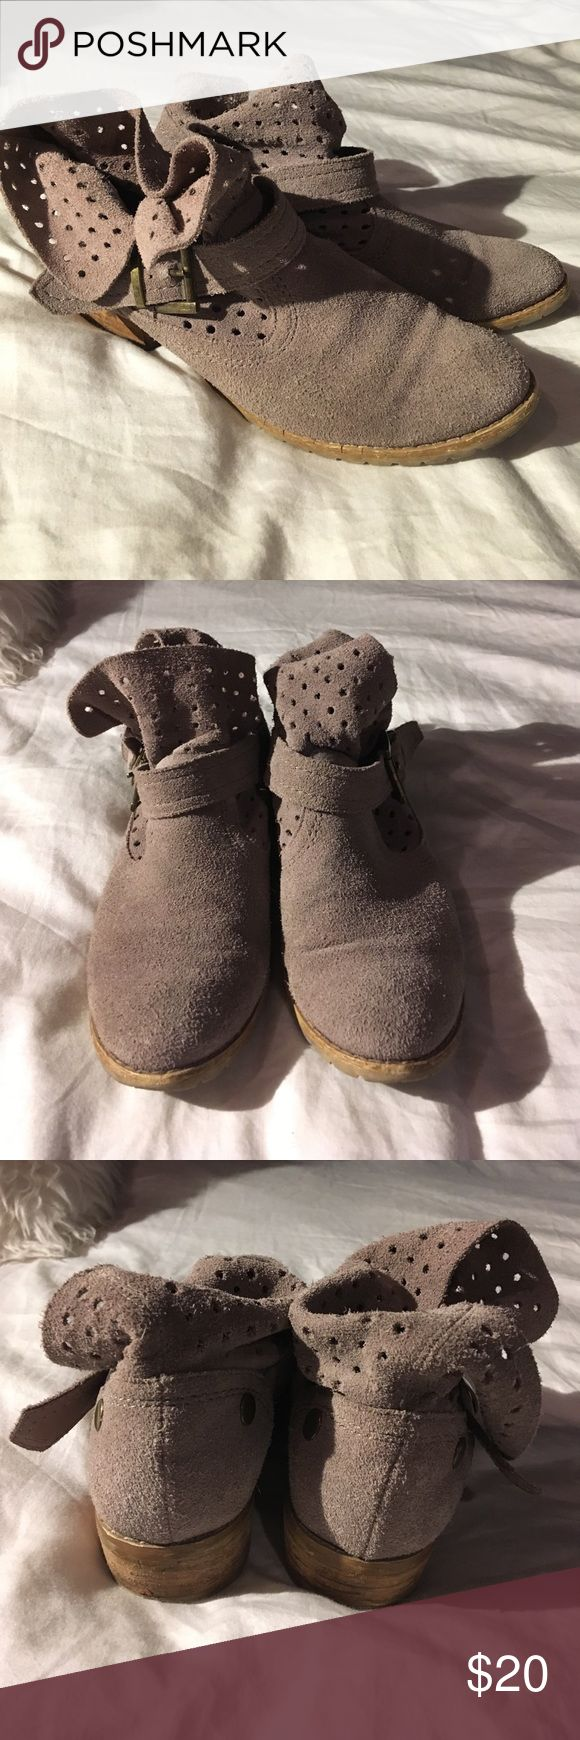 Restricted suede perforated ankle booties Restricted suede perforated ankle booties. Taupish Grey color. See photos to show wear, floppy style. Size 6 Restricted Shoes Ankle Boots & Booties